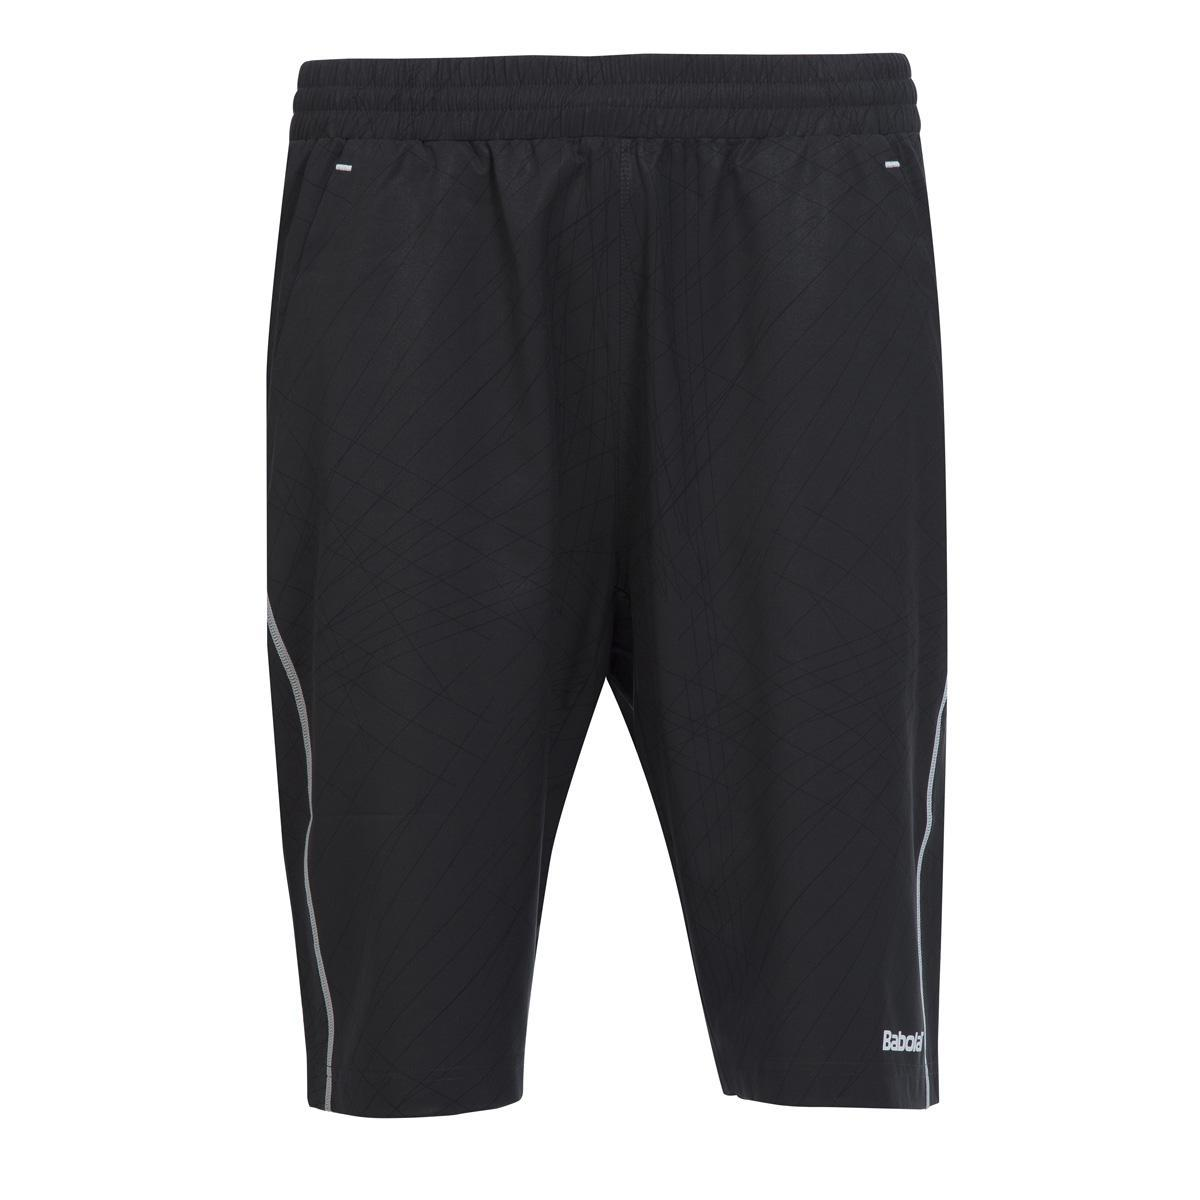 Babolat Boys Short X-Long Performance Anthracite